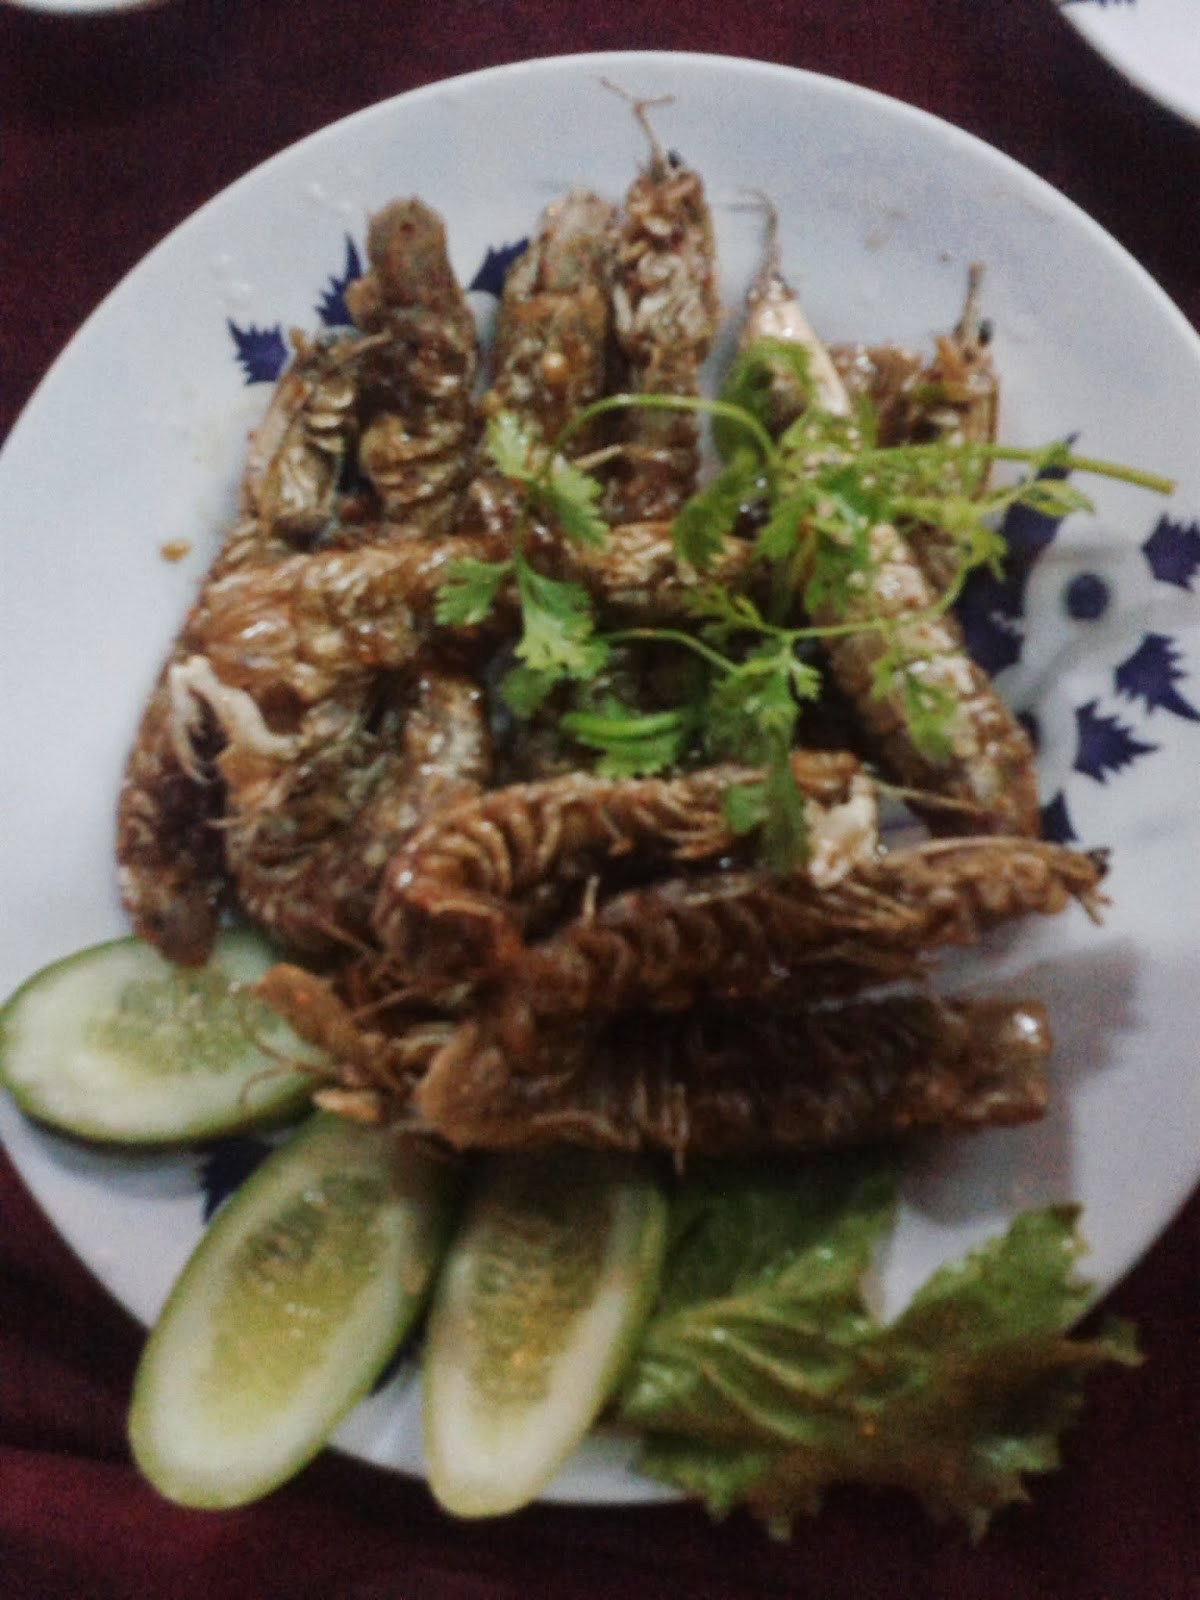 eating Mantis shrimp in vietnam